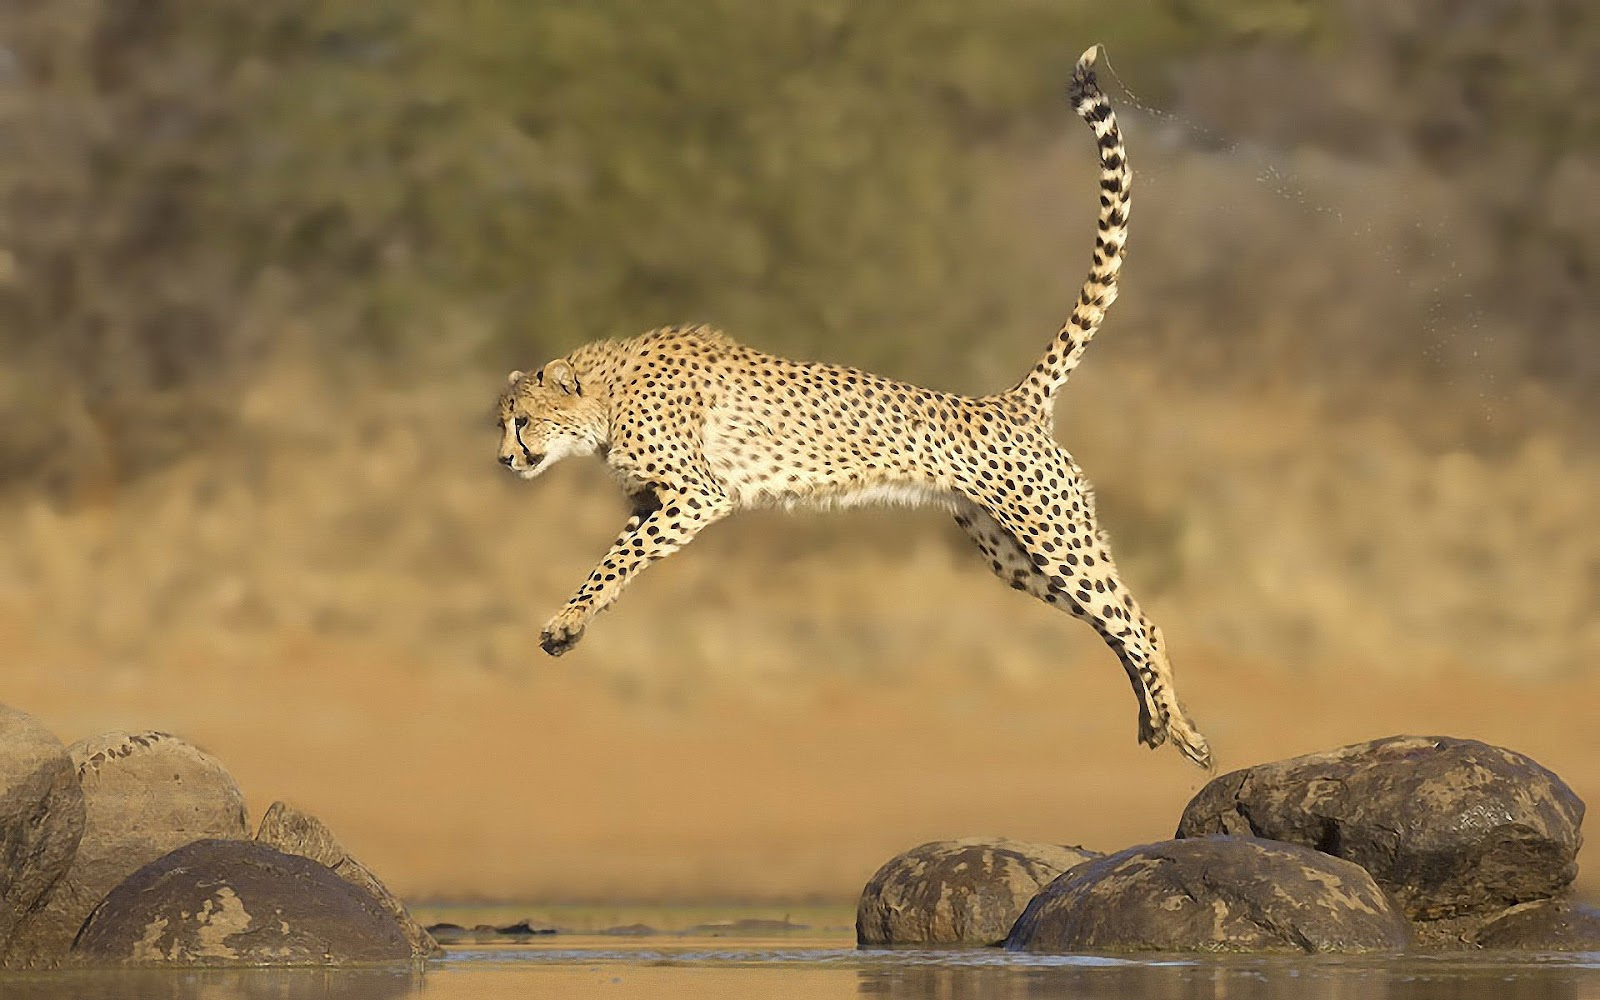 http://2.bp.blogspot.com/-PKBoHcjrUwA/UCfCyFP92NI/AAAAAAAAAbU/mJOUqolelUI/s1600/hd-cheetah-wallpaper-with-a-fast-running-jumping-cheetah-over-water-hd-cheetah-wallpapers-backgrounds.jpg